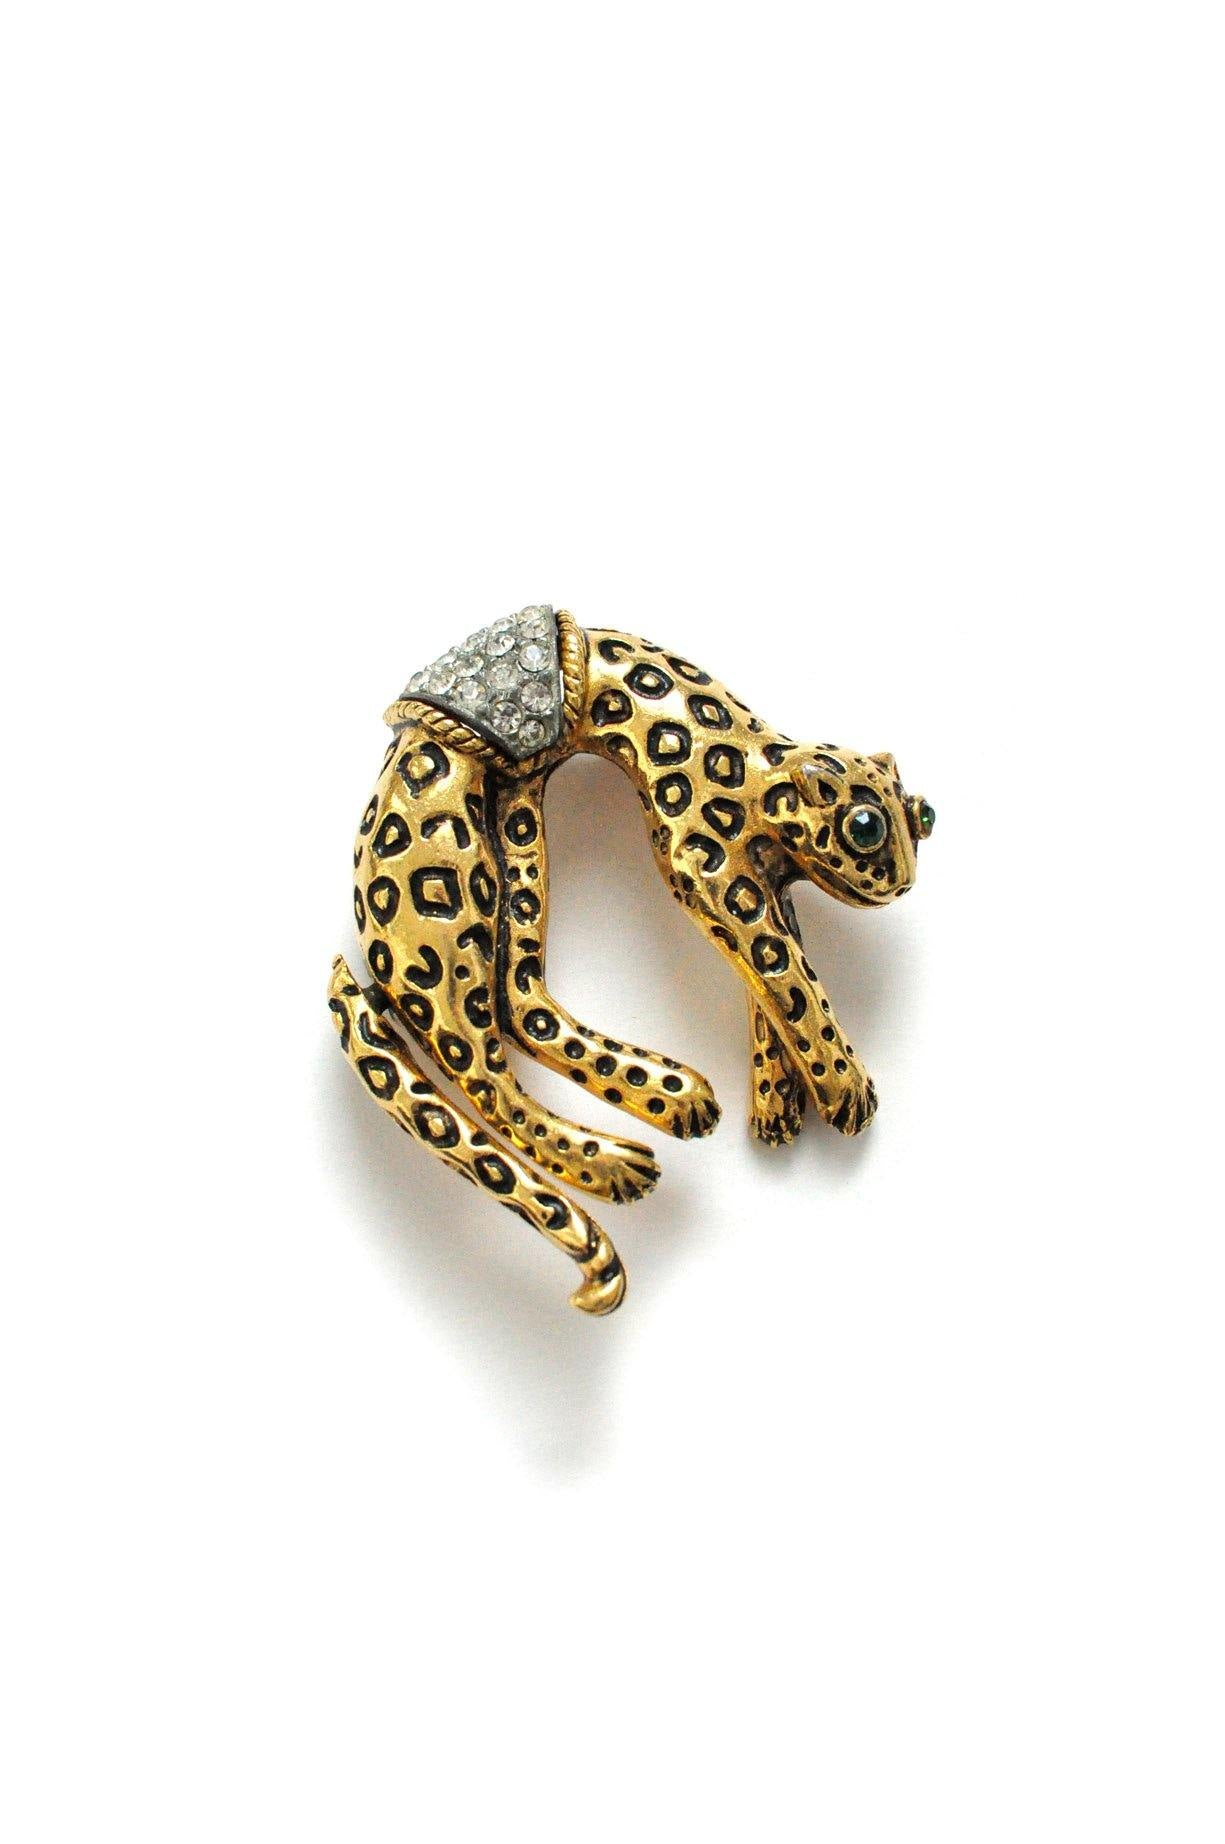 Jaguar Brooch from Sweet & Spark